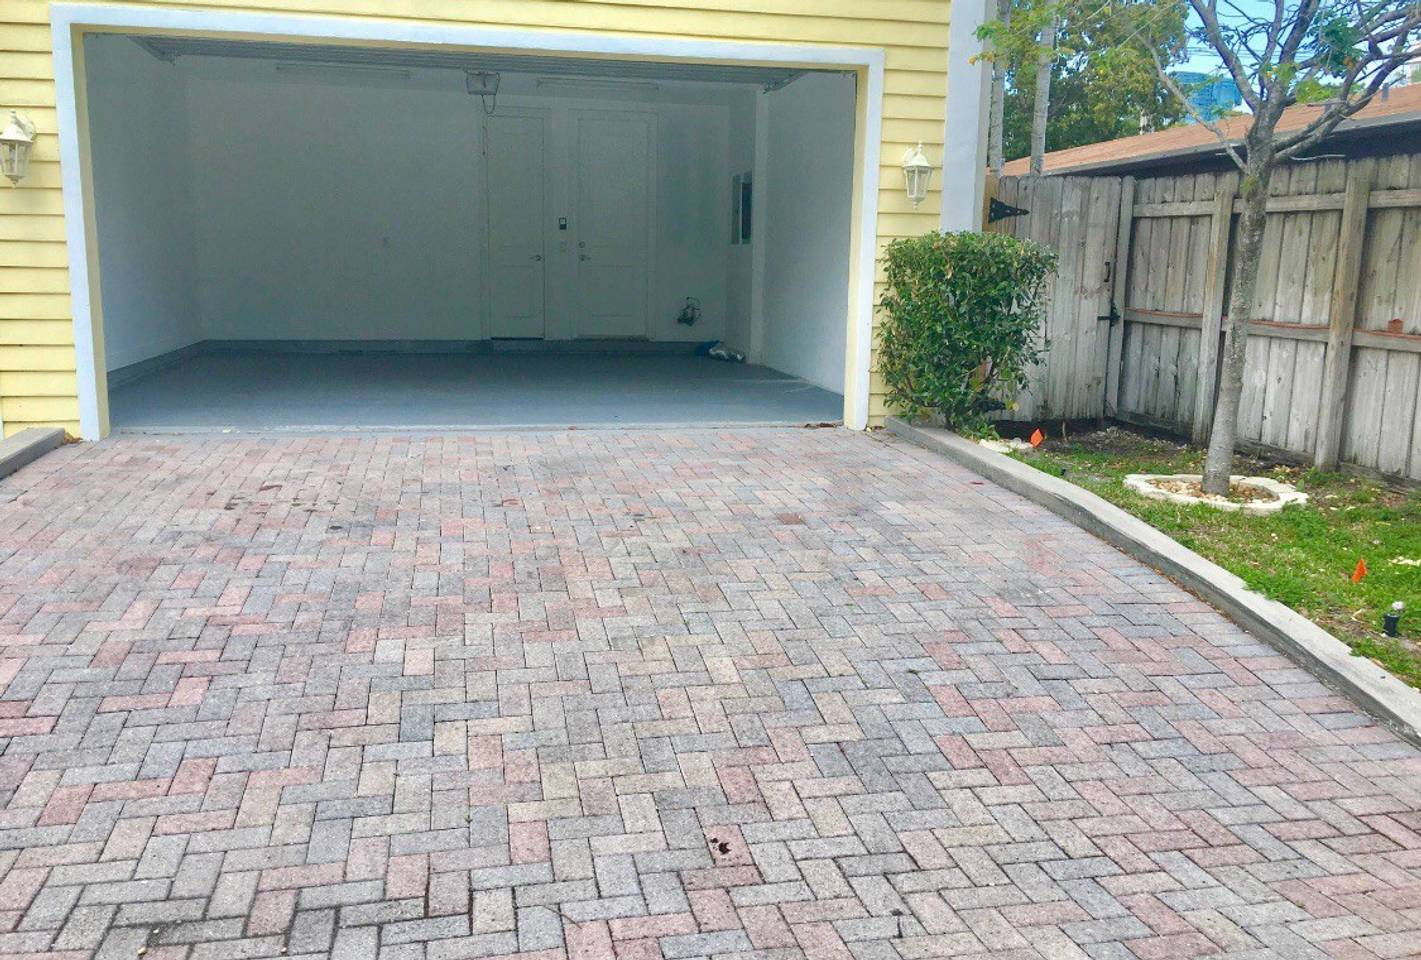 4 Bedroom House Close to Everything In FLL #906 photo 8504282